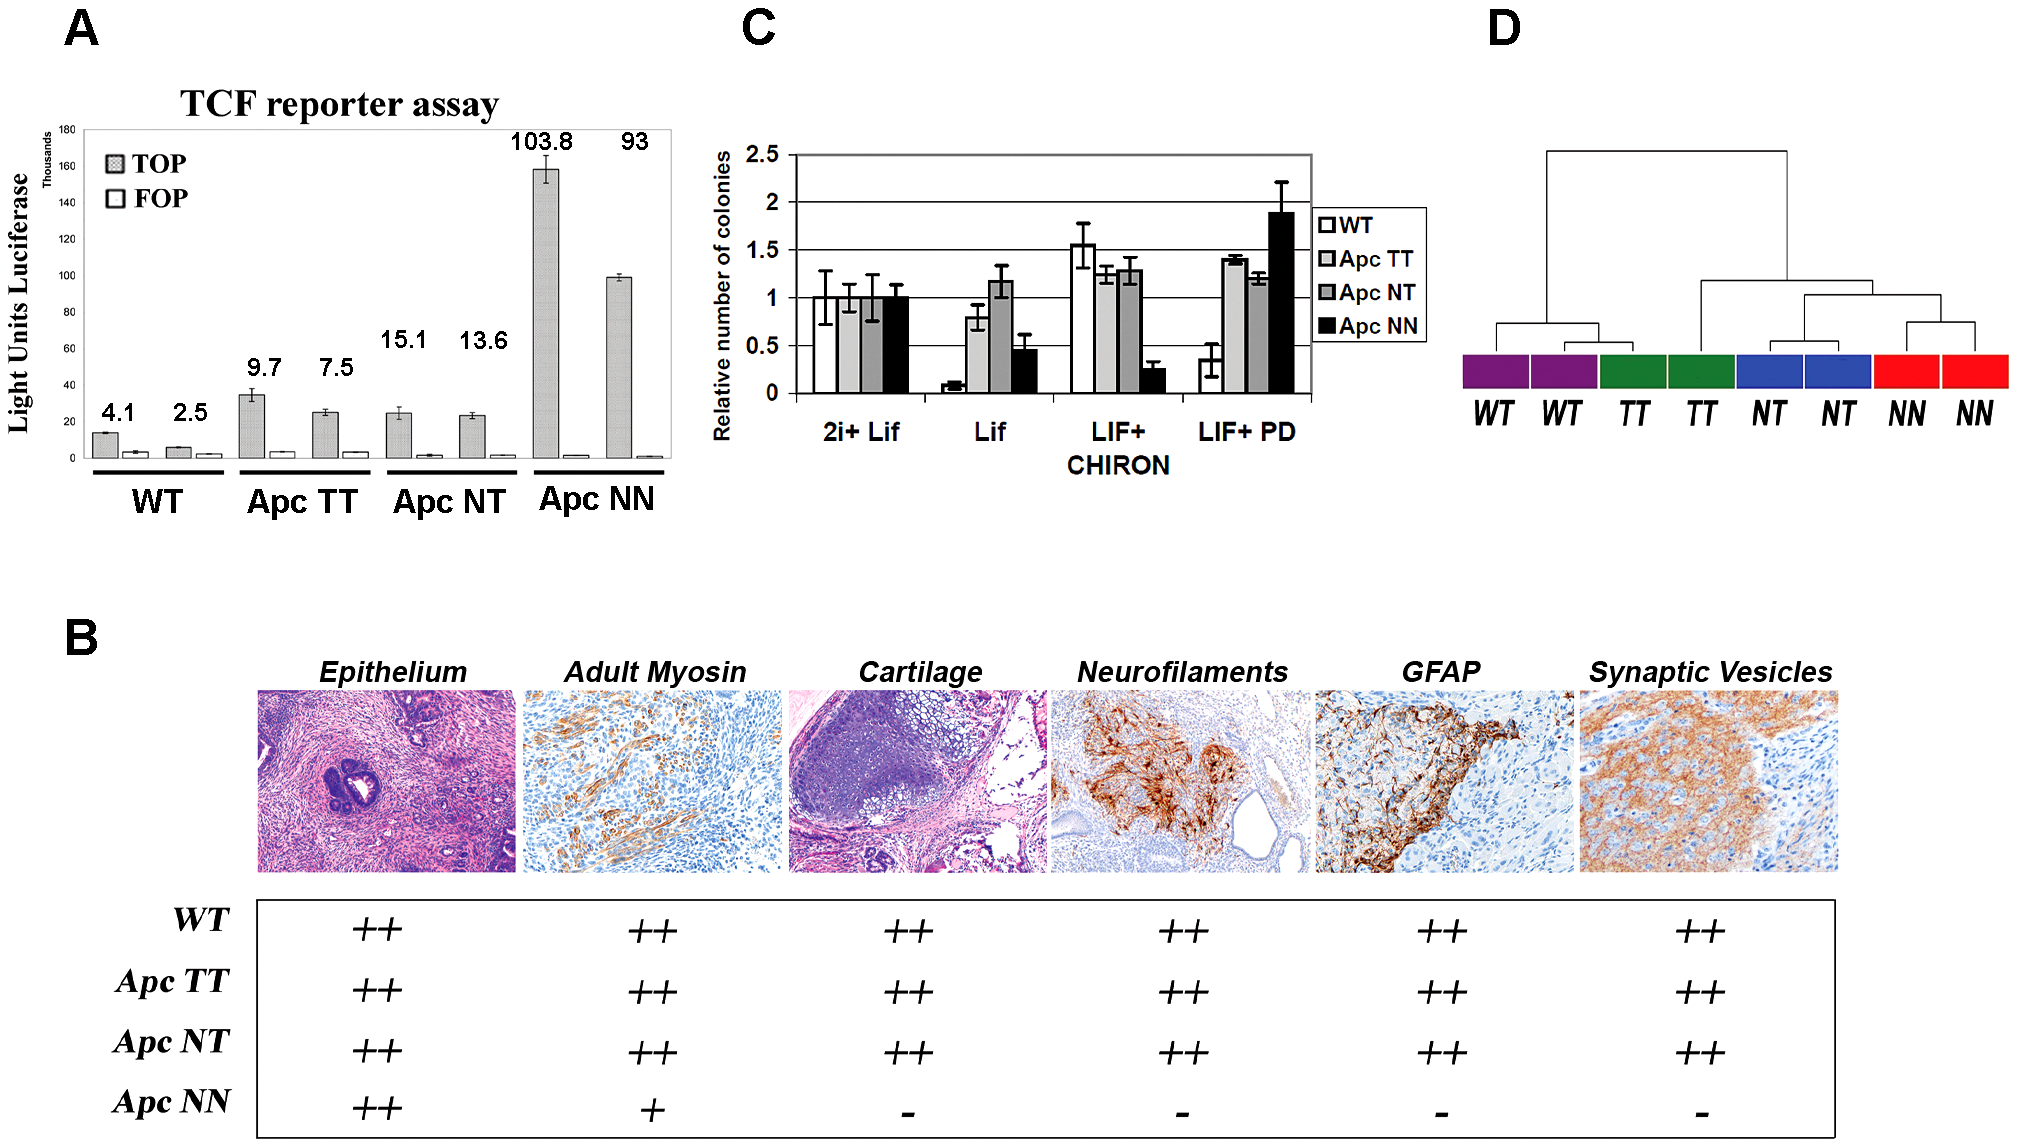 Wnt signaling regulates the differentiation potential of mouse ESCs in a dosage-dependent manner.